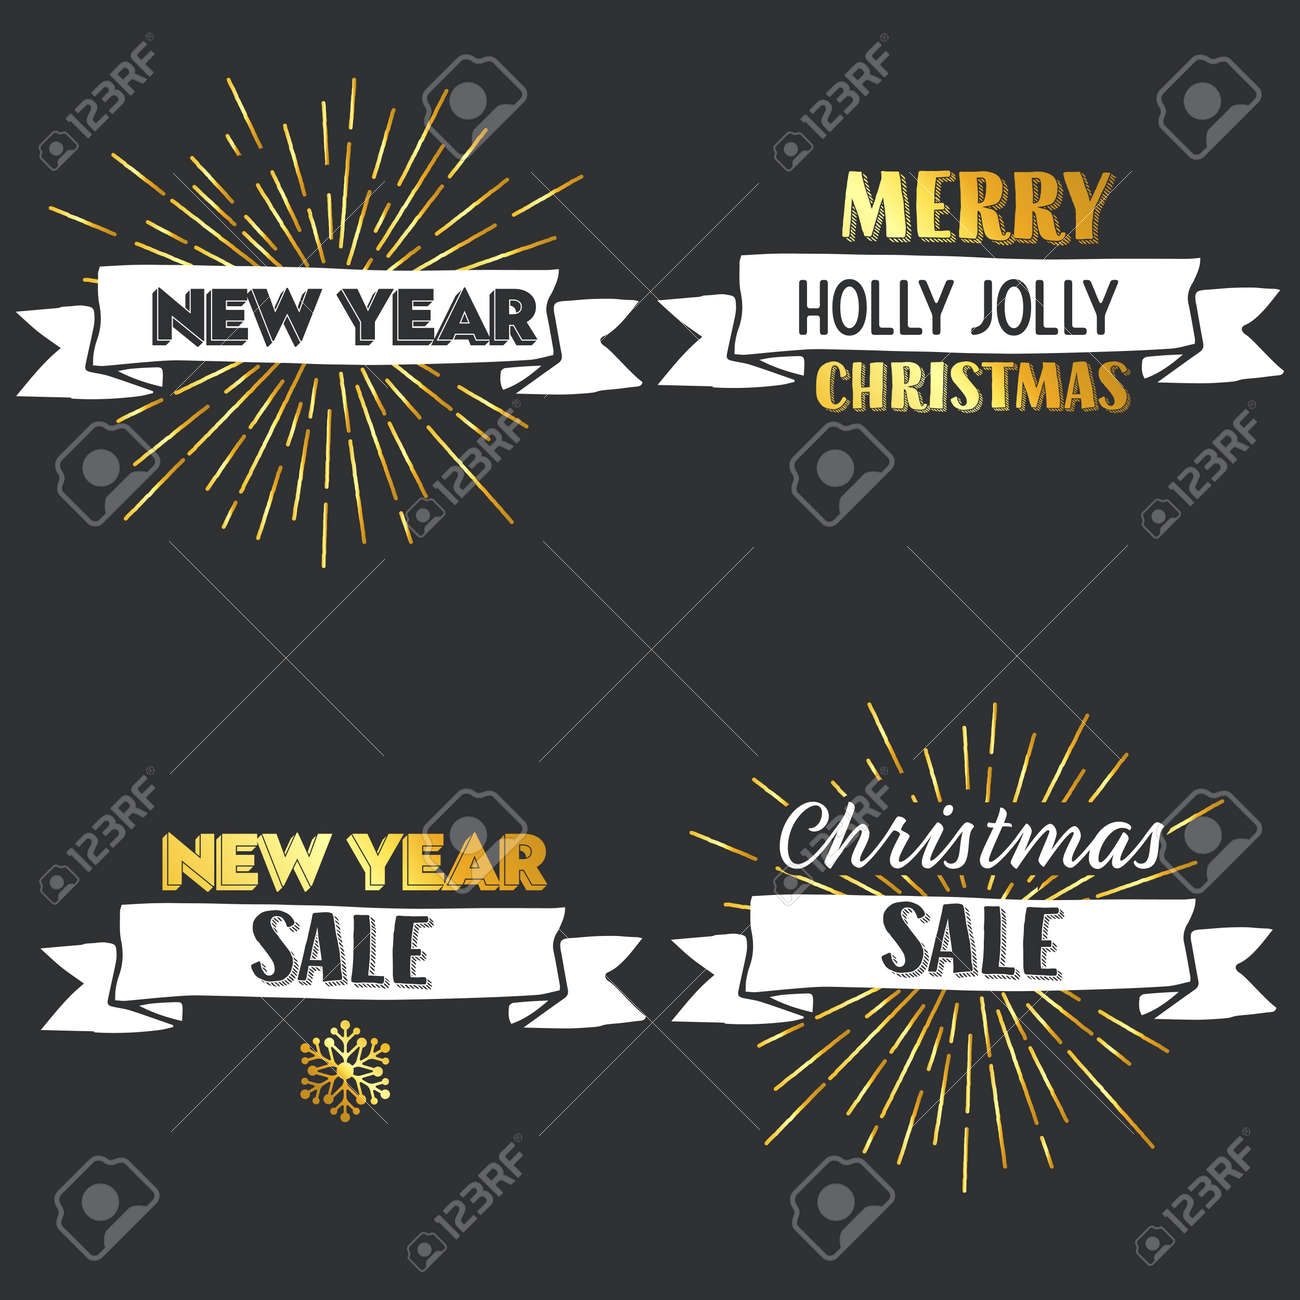 New Year And Merry Christmas Signs With Golden Elements. Vector ...